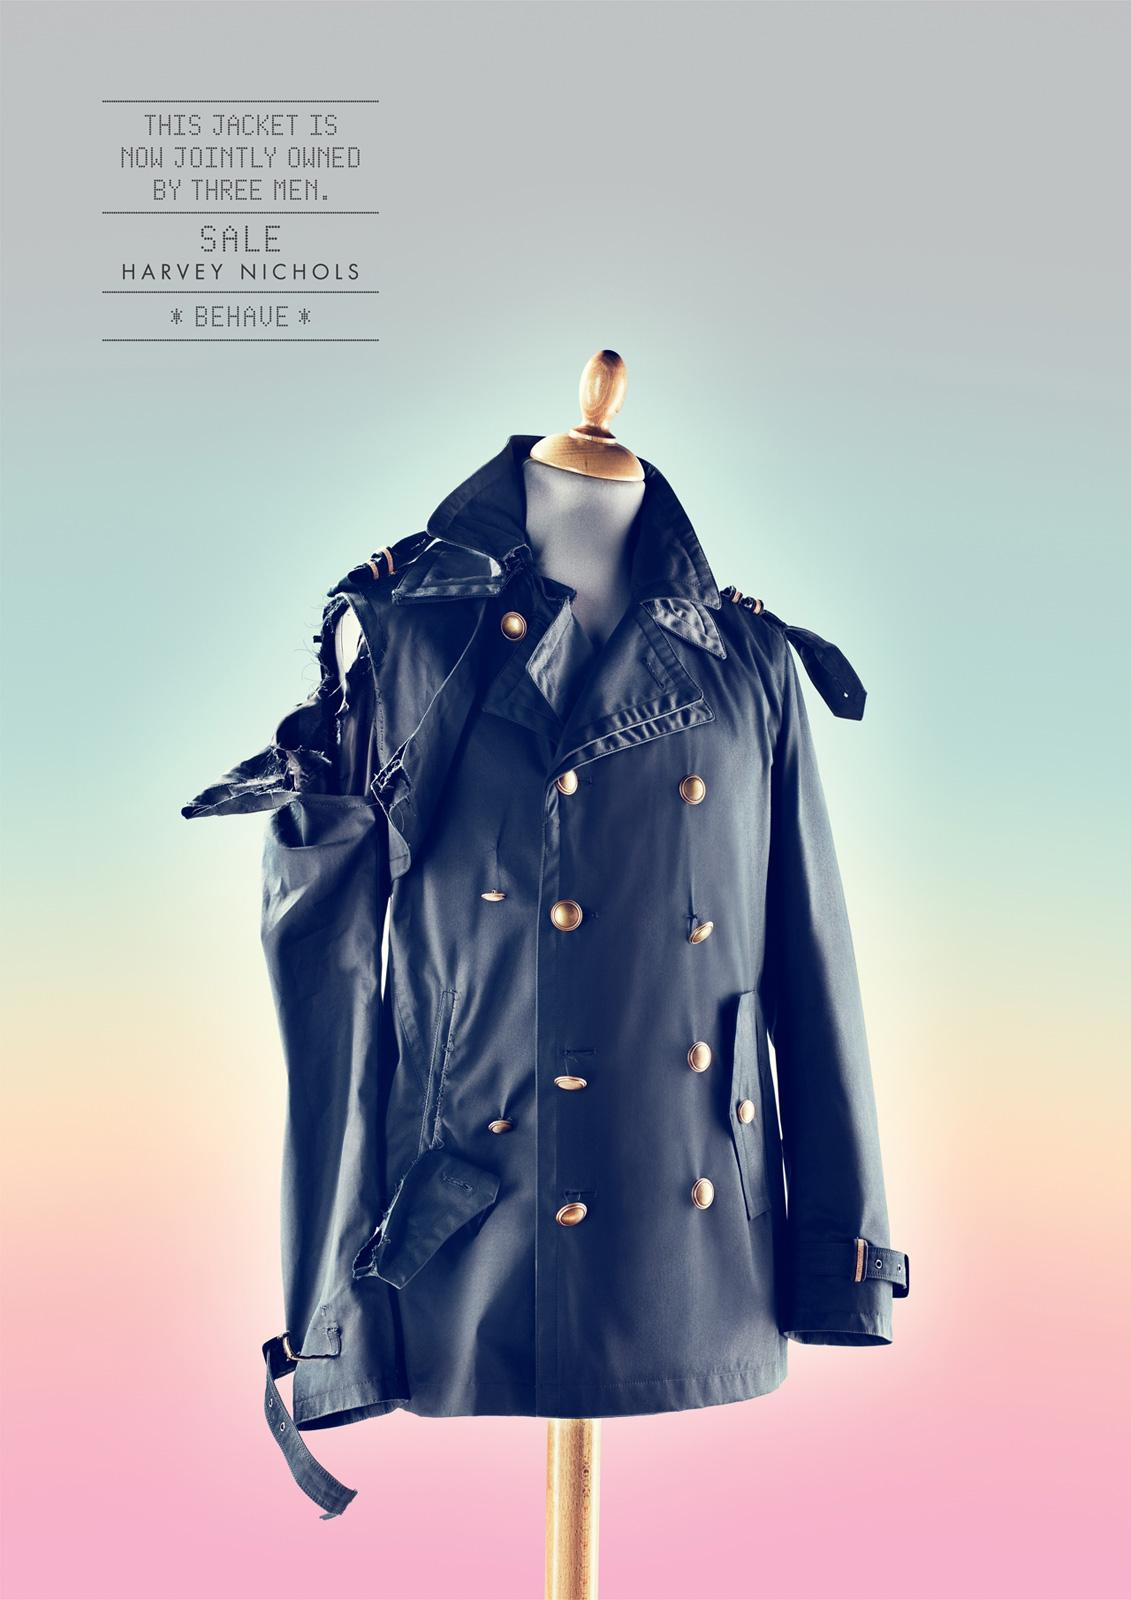 Harvey Nichols Print Ad -  Behave, Jacket